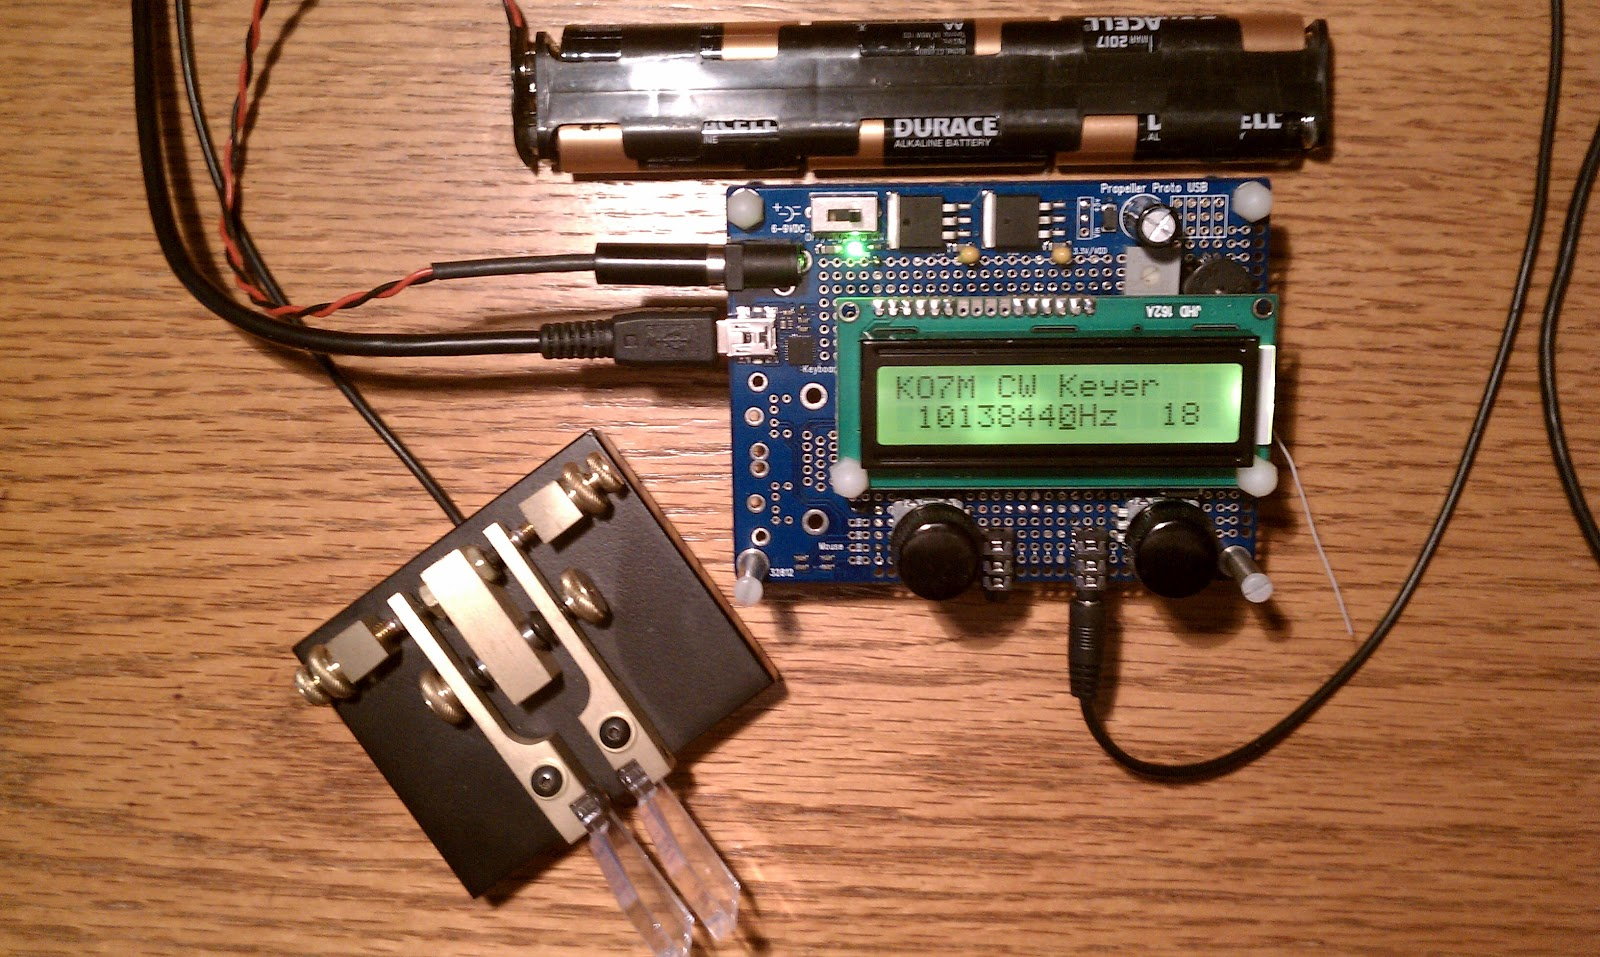 Ko m ham radio keyer transmitter bugs found by